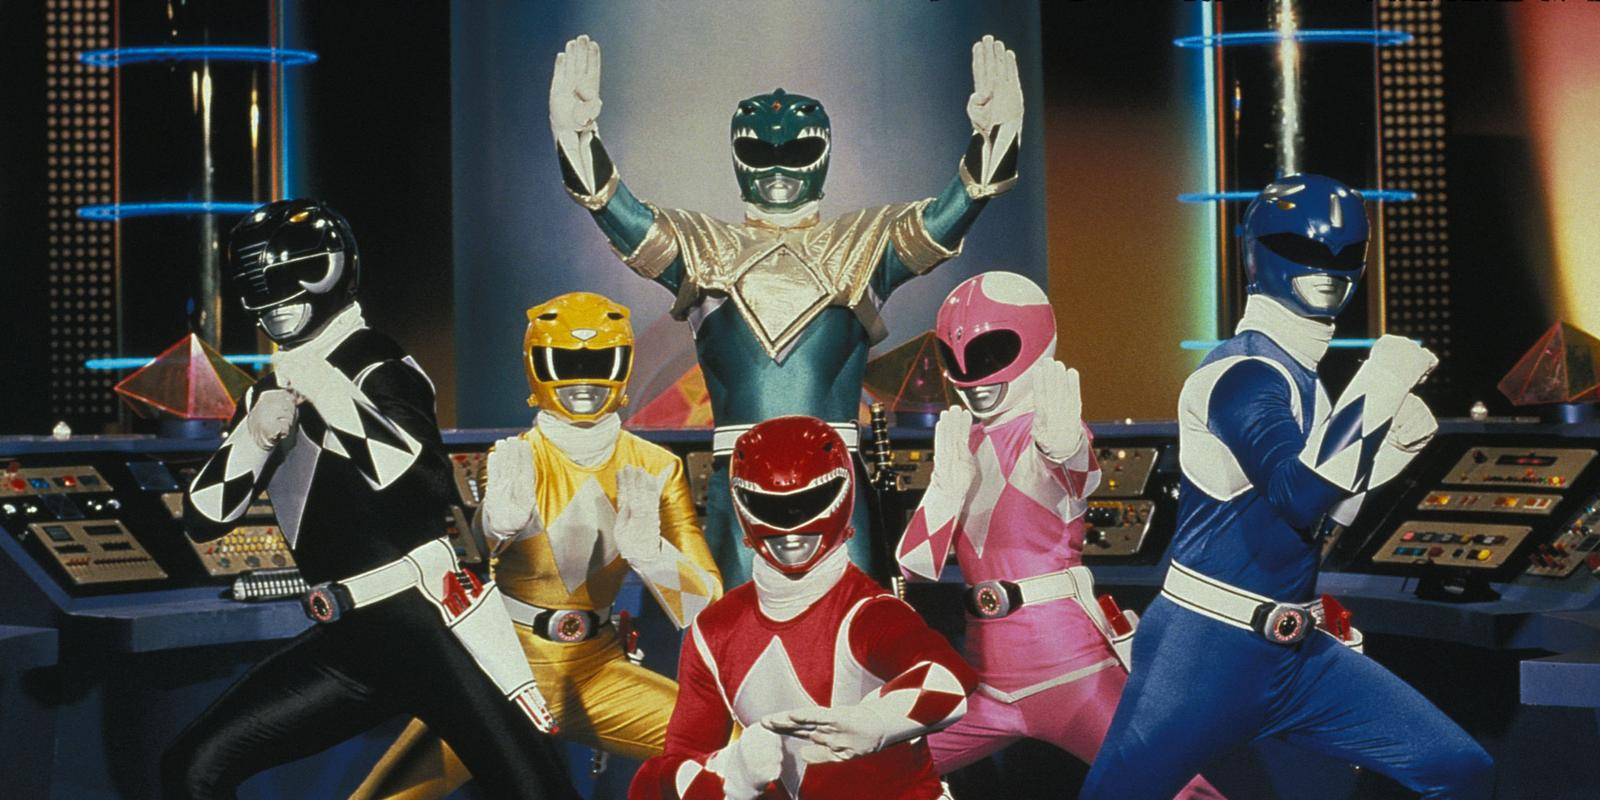 http://digitalspyuk.cdnds.net/14/19/1600x800/landscape_ustv-power-rangers-original-cast.jpg